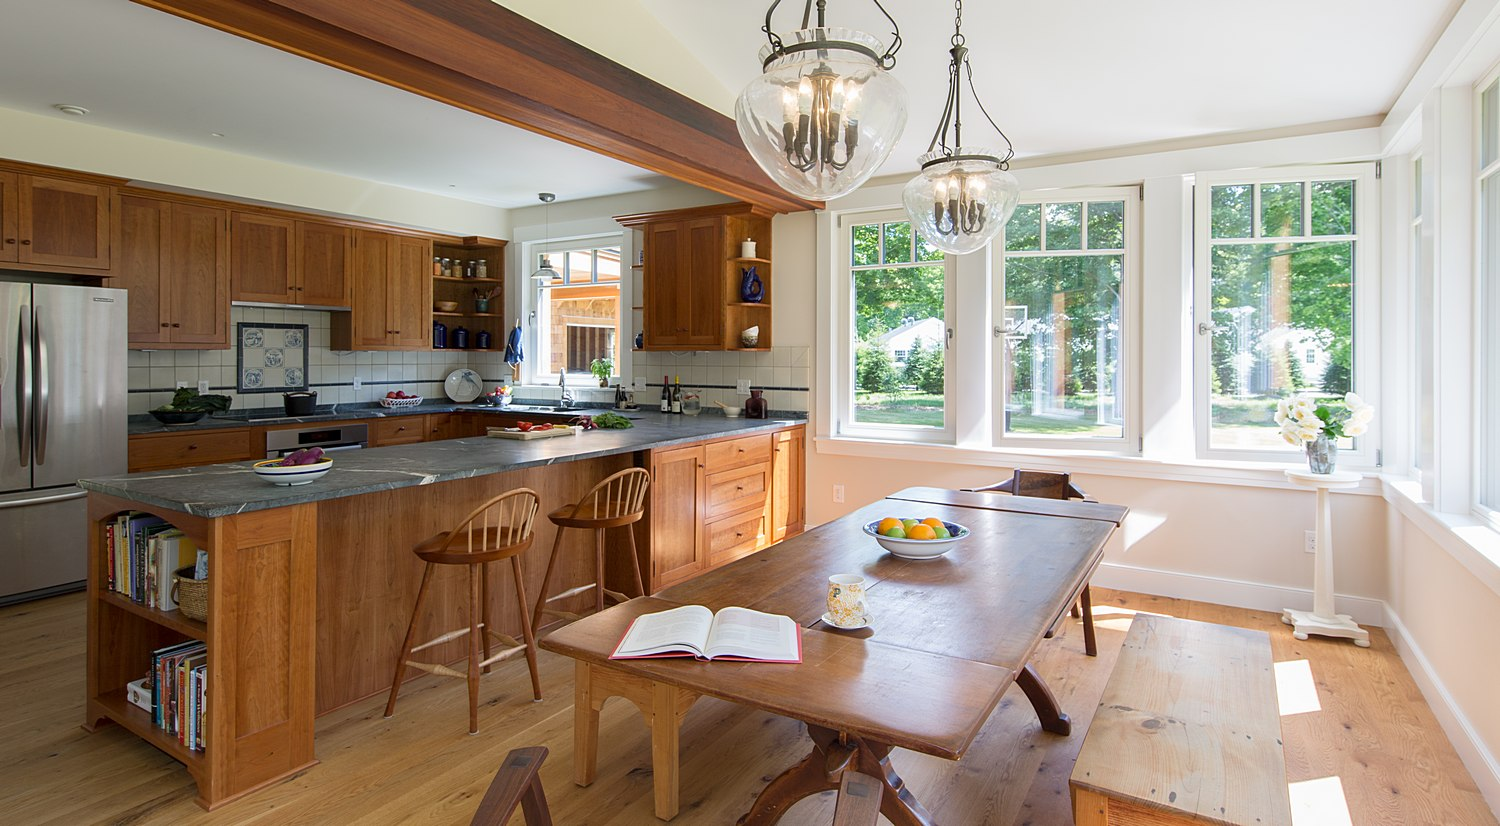 Open concept dining and kitchen area